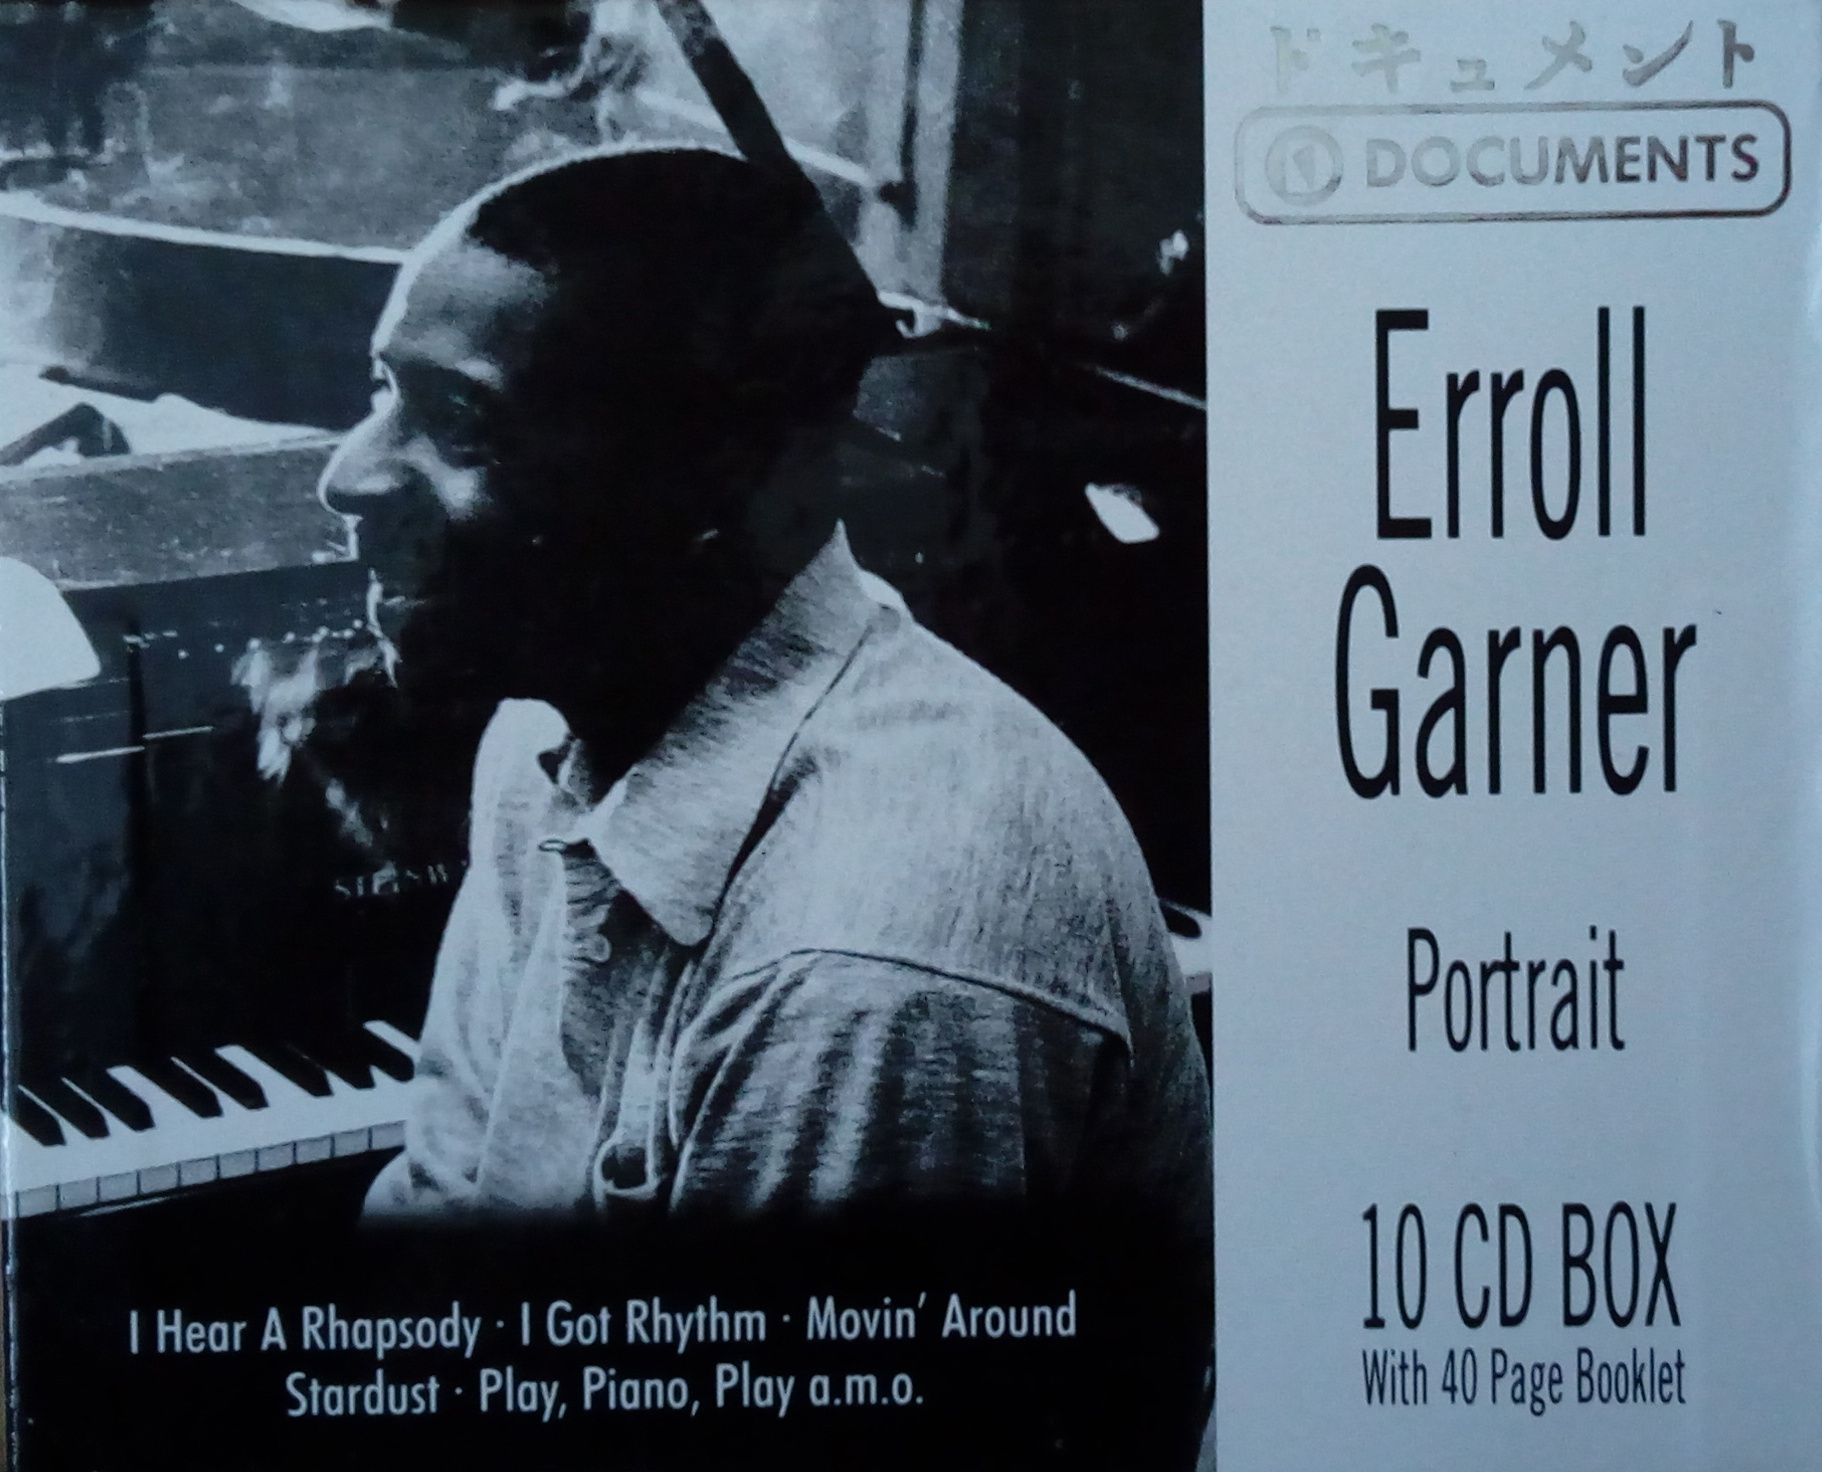 Erroll Garner - Pitrait 10CD